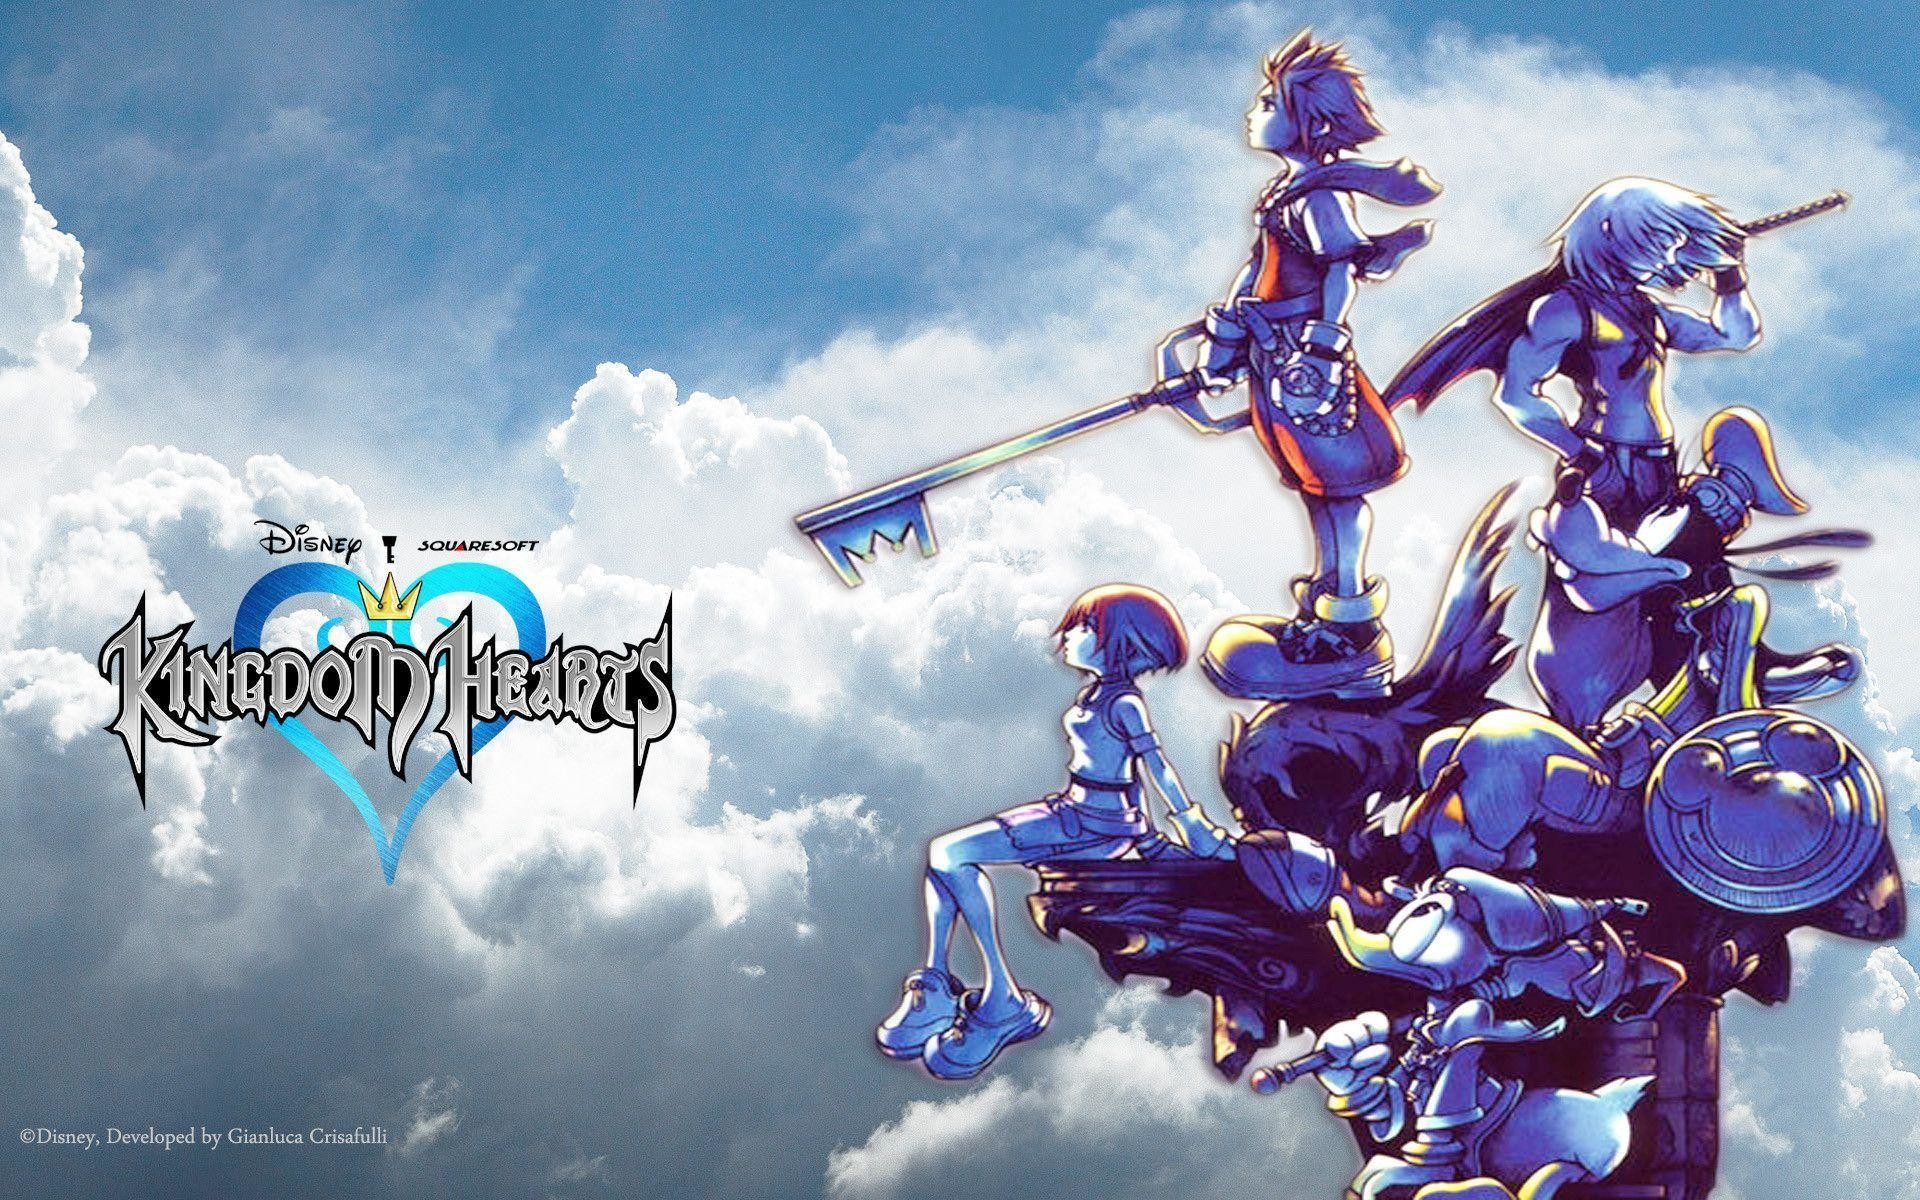 Res: 1920x1200, Kingdom Hearts Wallpapers - Full HD wallpaper search